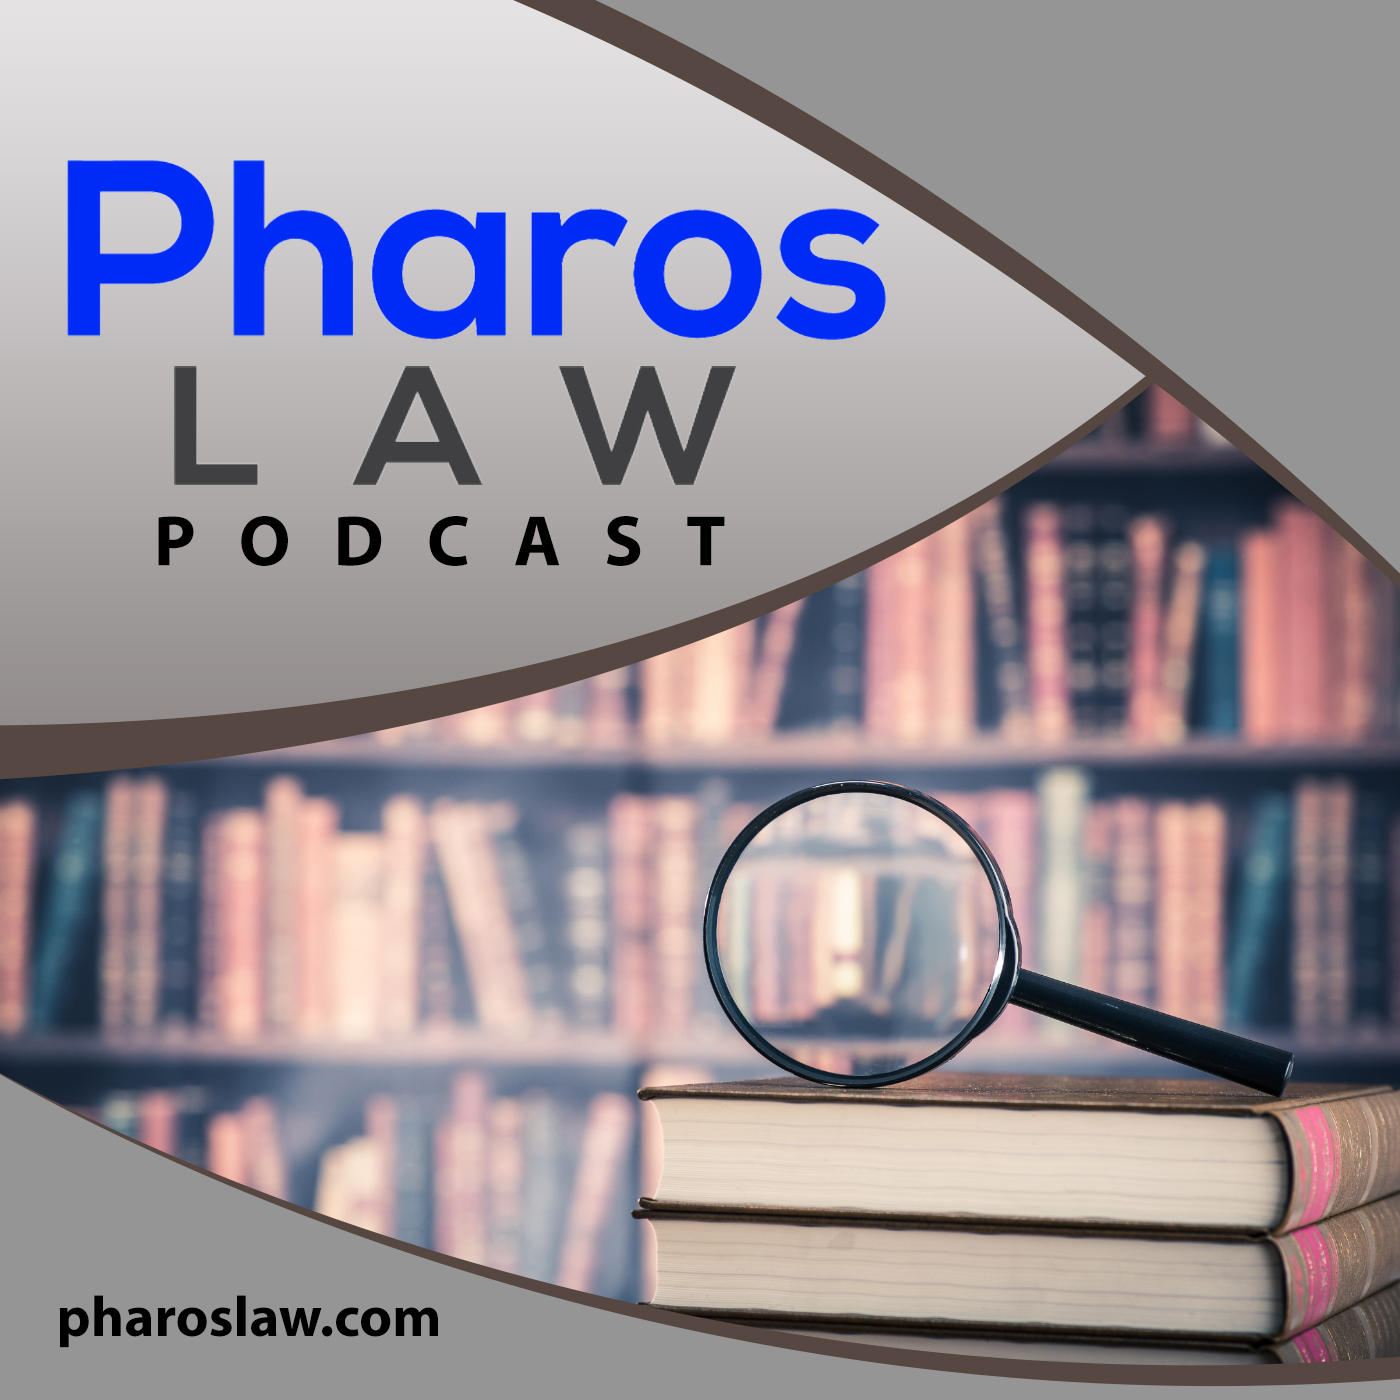 Pharos Law Podcast–is a single member LLC required to have an operating agreement?